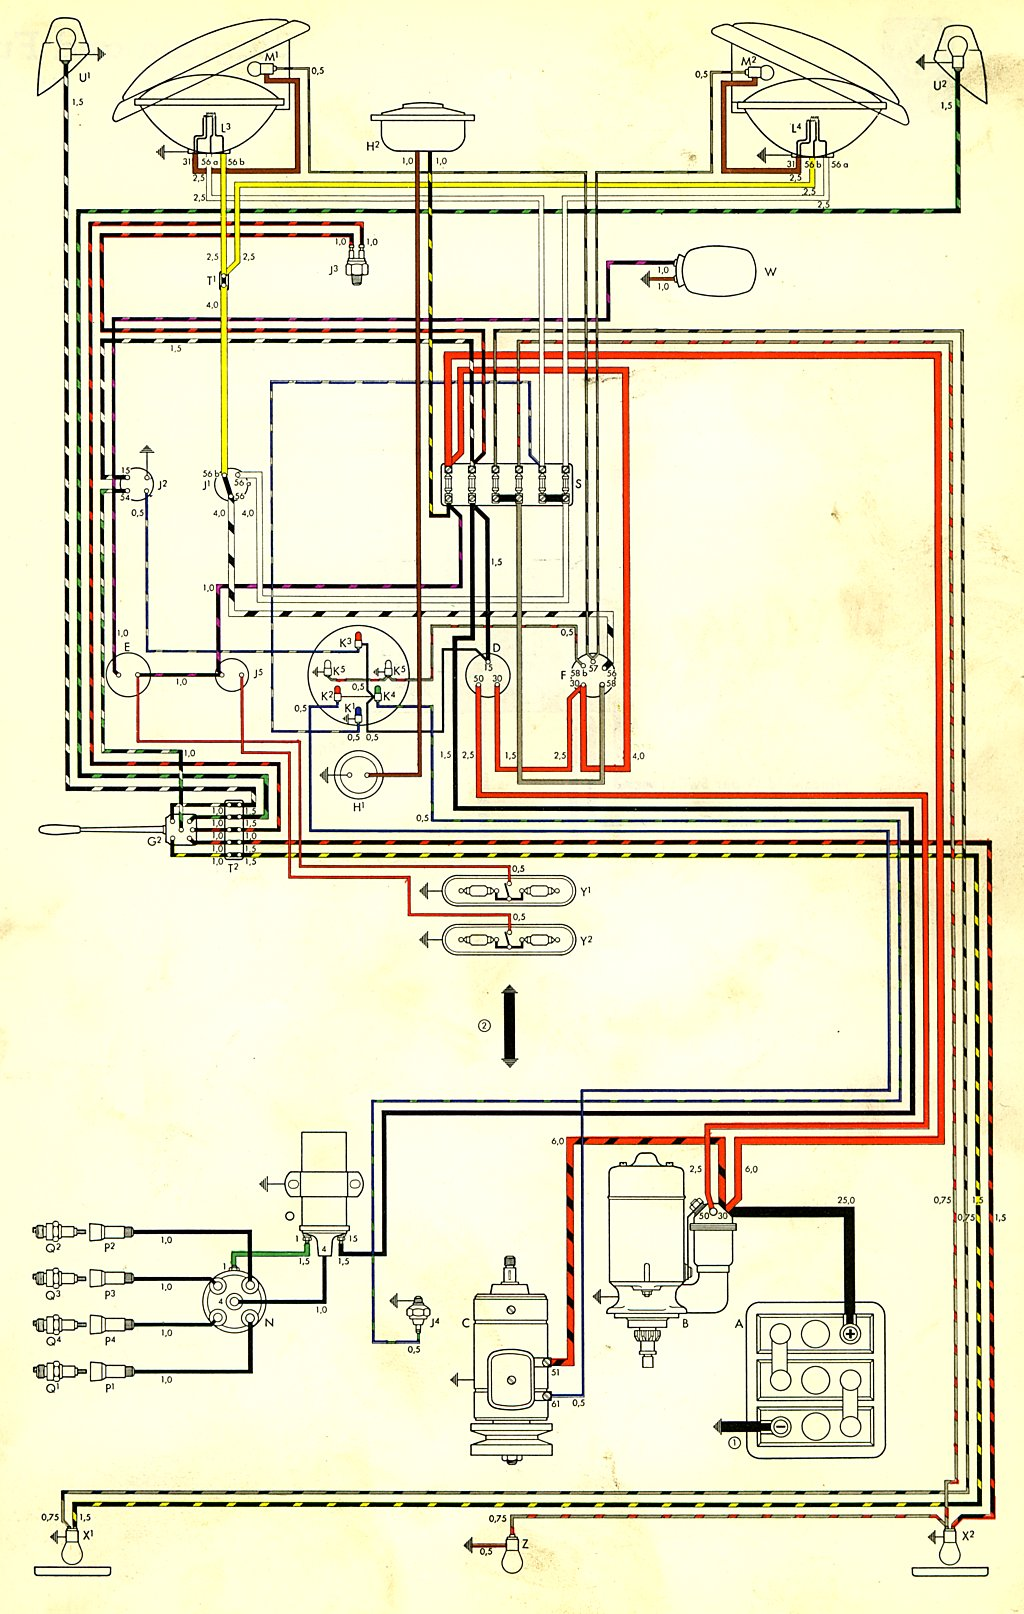 hight resolution of 1968 vw bus wiring diagram wiring diagram technic